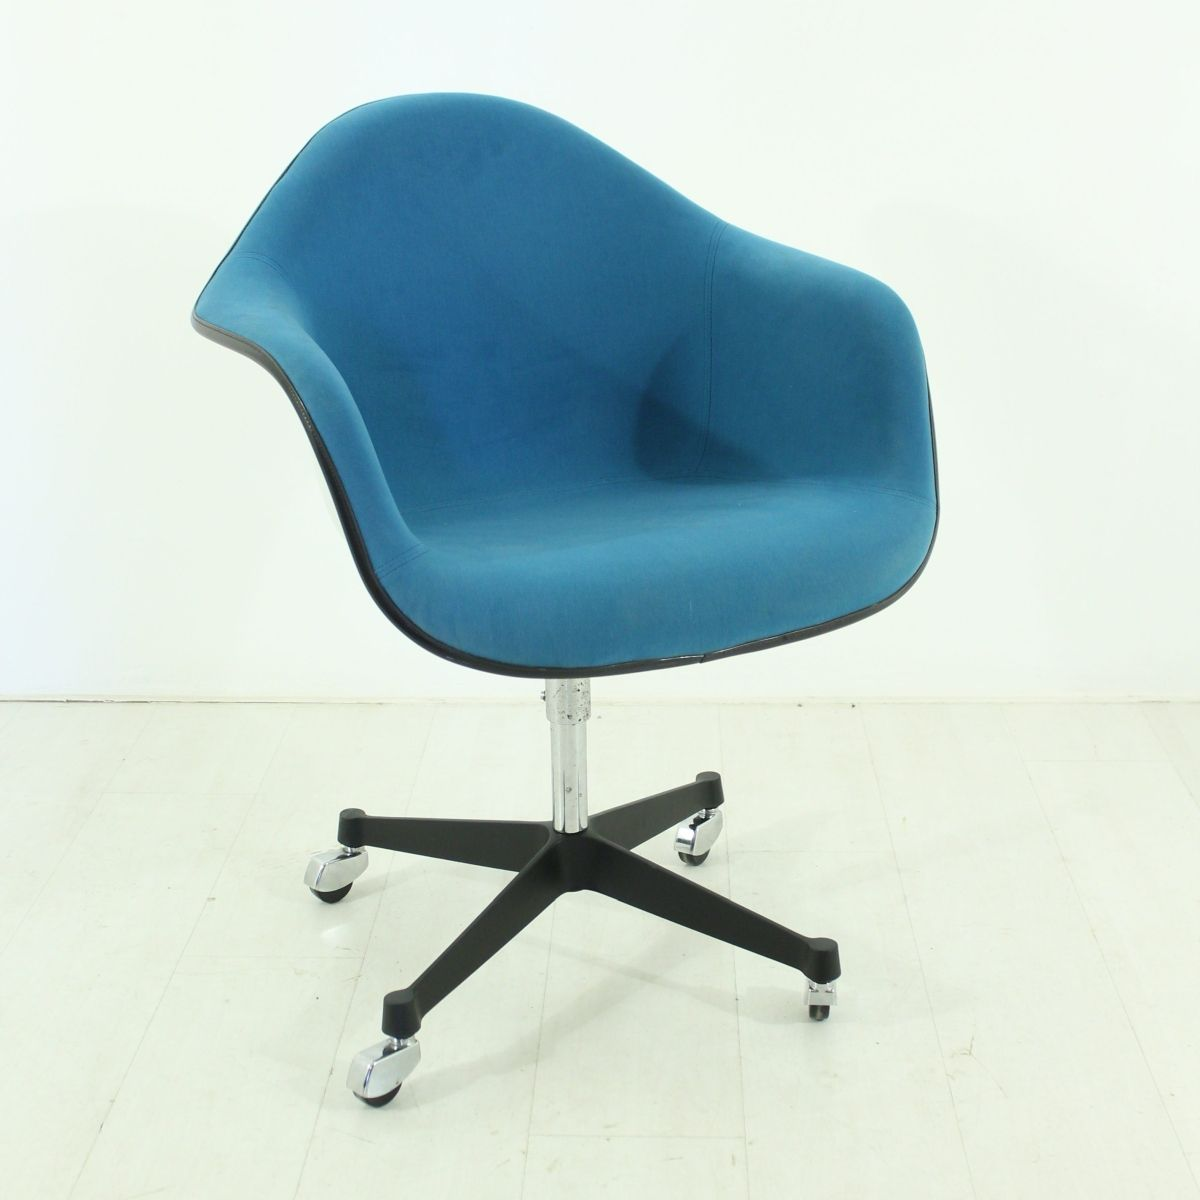 Teal office chair - Vintage Office Chair By Charles Ray Eames For Vitra